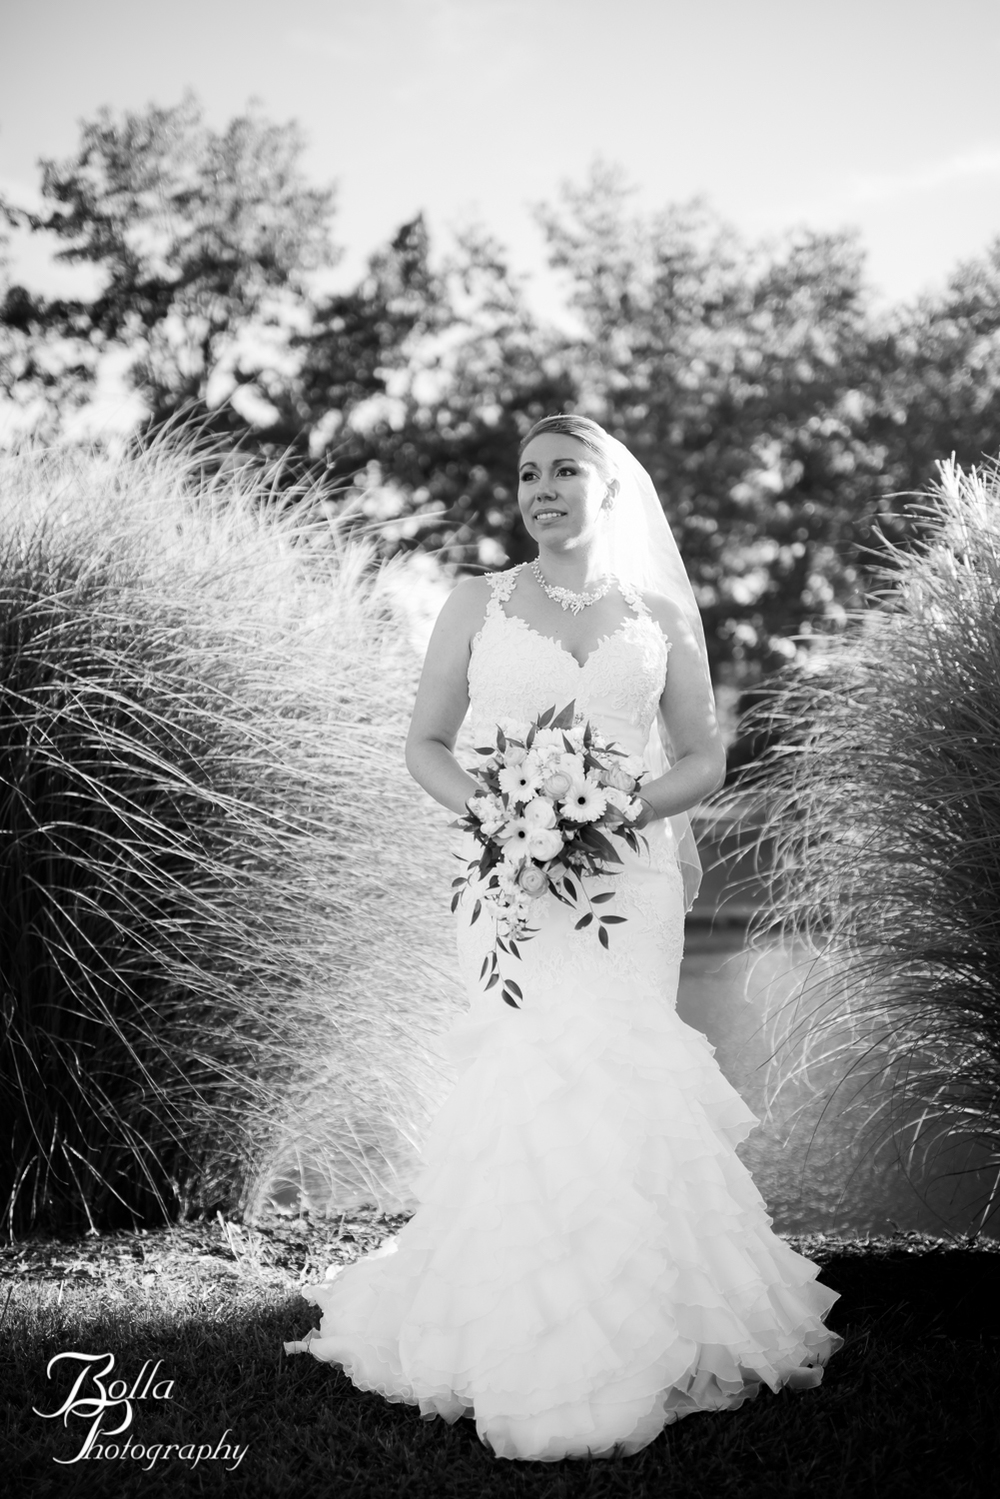 Bolla_Photography_St_Louis_wedding_photographer-0415.jpg